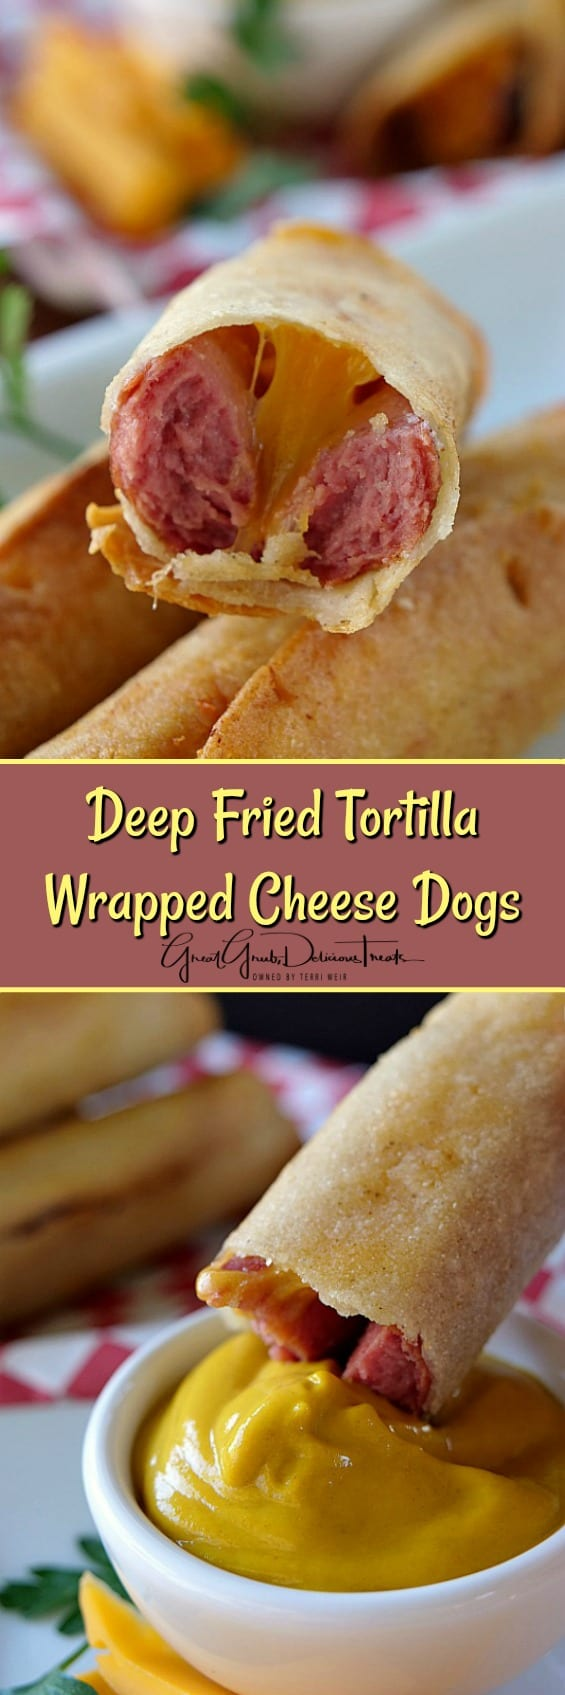 Deep Fried Tortilla Wrapped Cheese Dogs